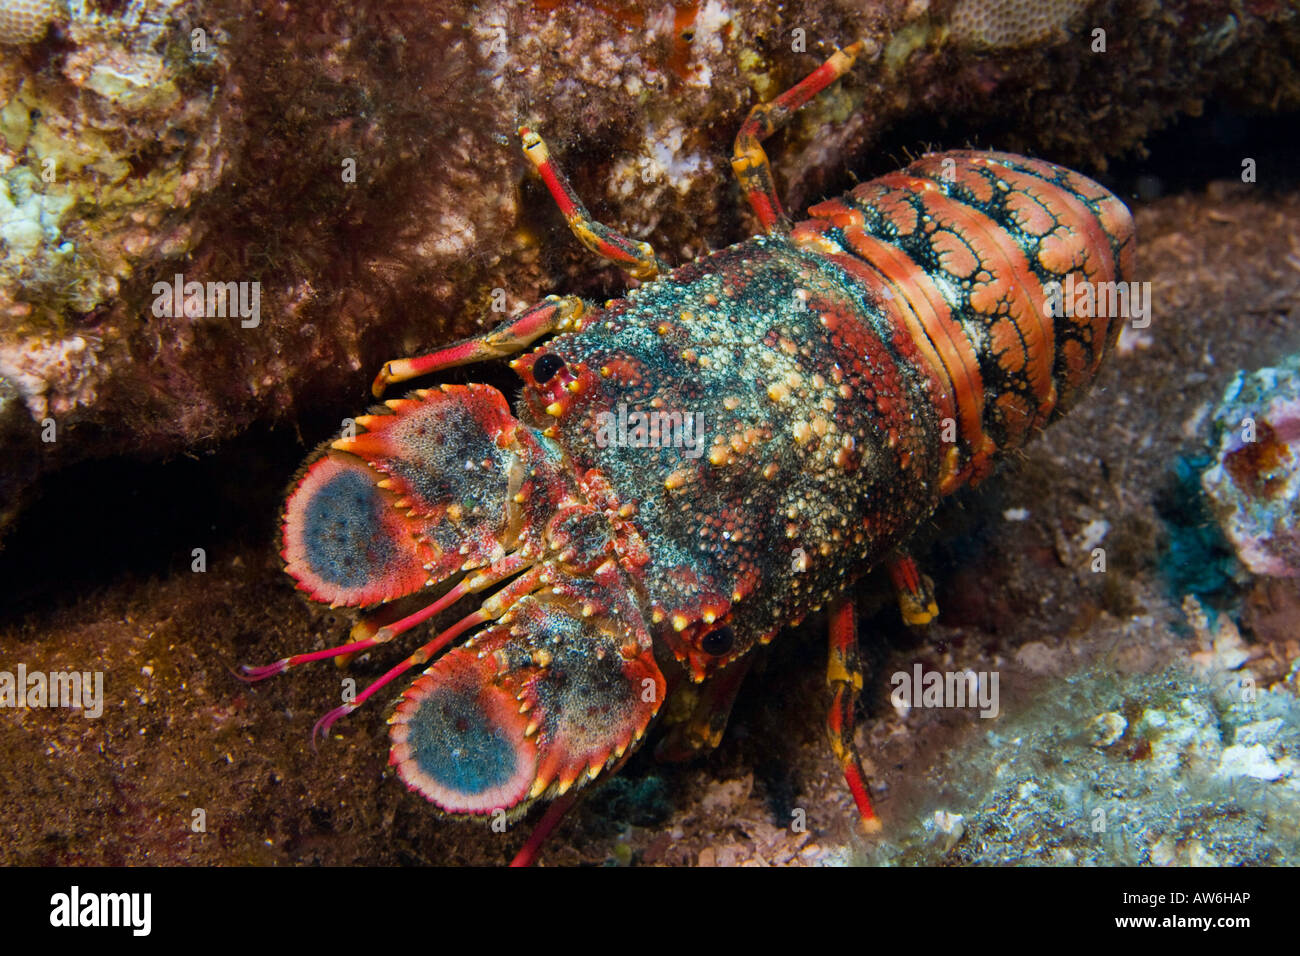 Regal slipper lobsters, Arctides regalis, are also called shovel nosed lobsters, Hawaii. - Stock Image